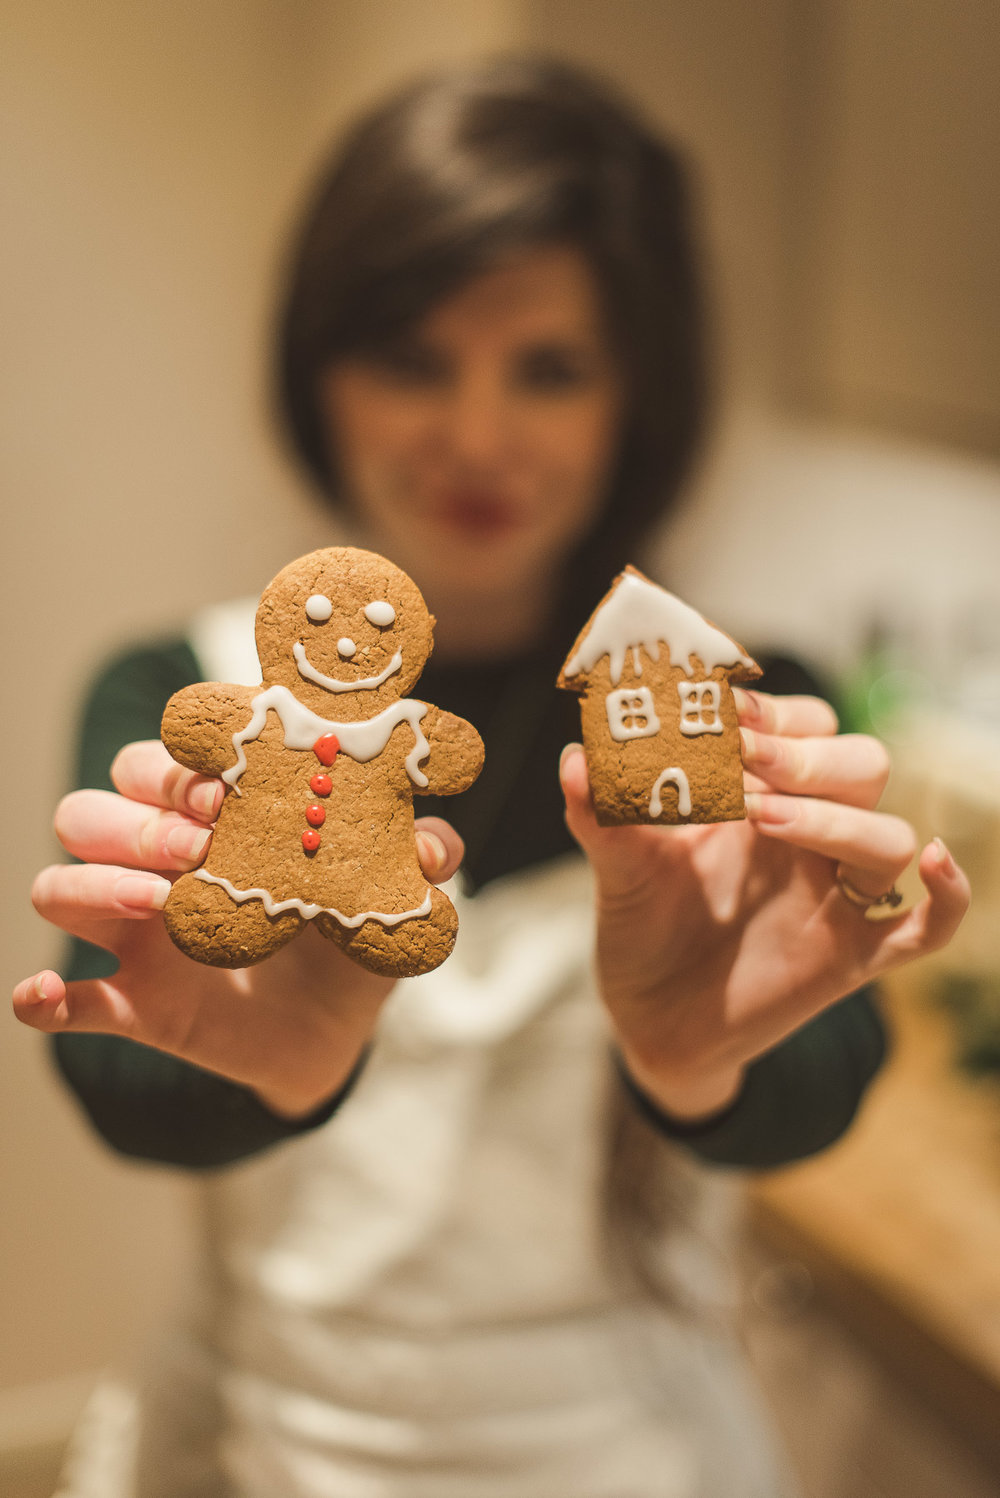 Gingerbread men and houses for Christmas